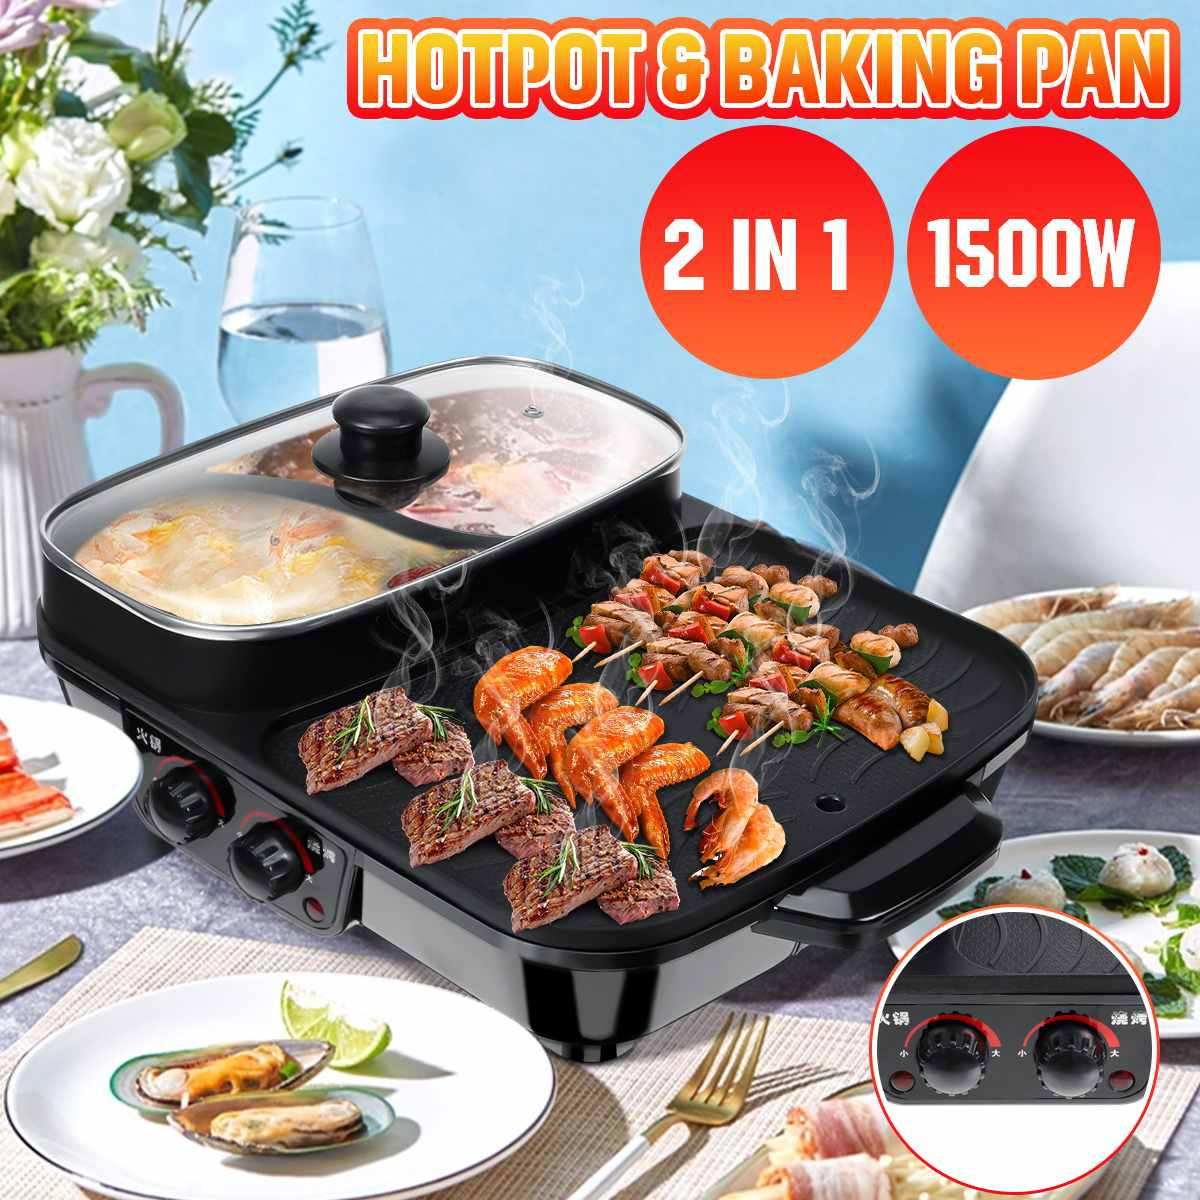 1600w electric shabu roasted pot multifunctional electric pan grill bbq grill raclette grill electric hotpot with grill pan 1500W 220V Electric Griddles Electric Grill & Hot Pot Non-stick Indoor Baking Flat Pan Home Smokeless Hotpot BBQ Griddle Plate